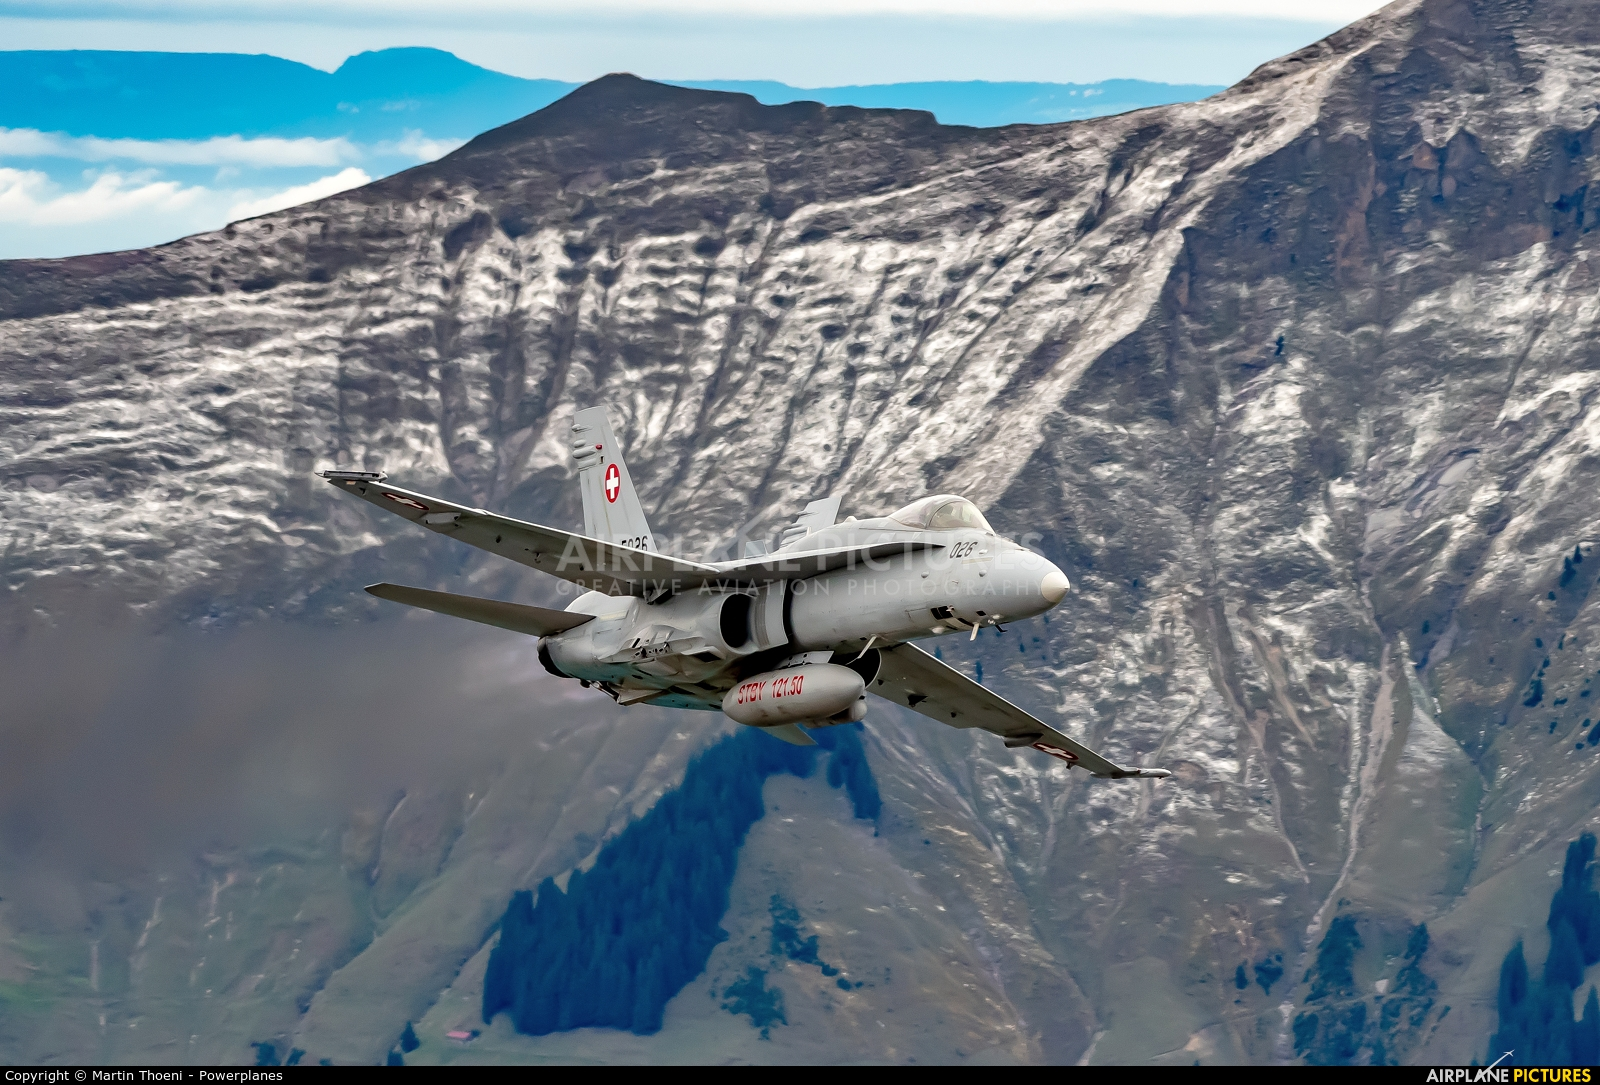 Switzerland - Air Force J-5026 aircraft at Axalp - Ebenfluh Range